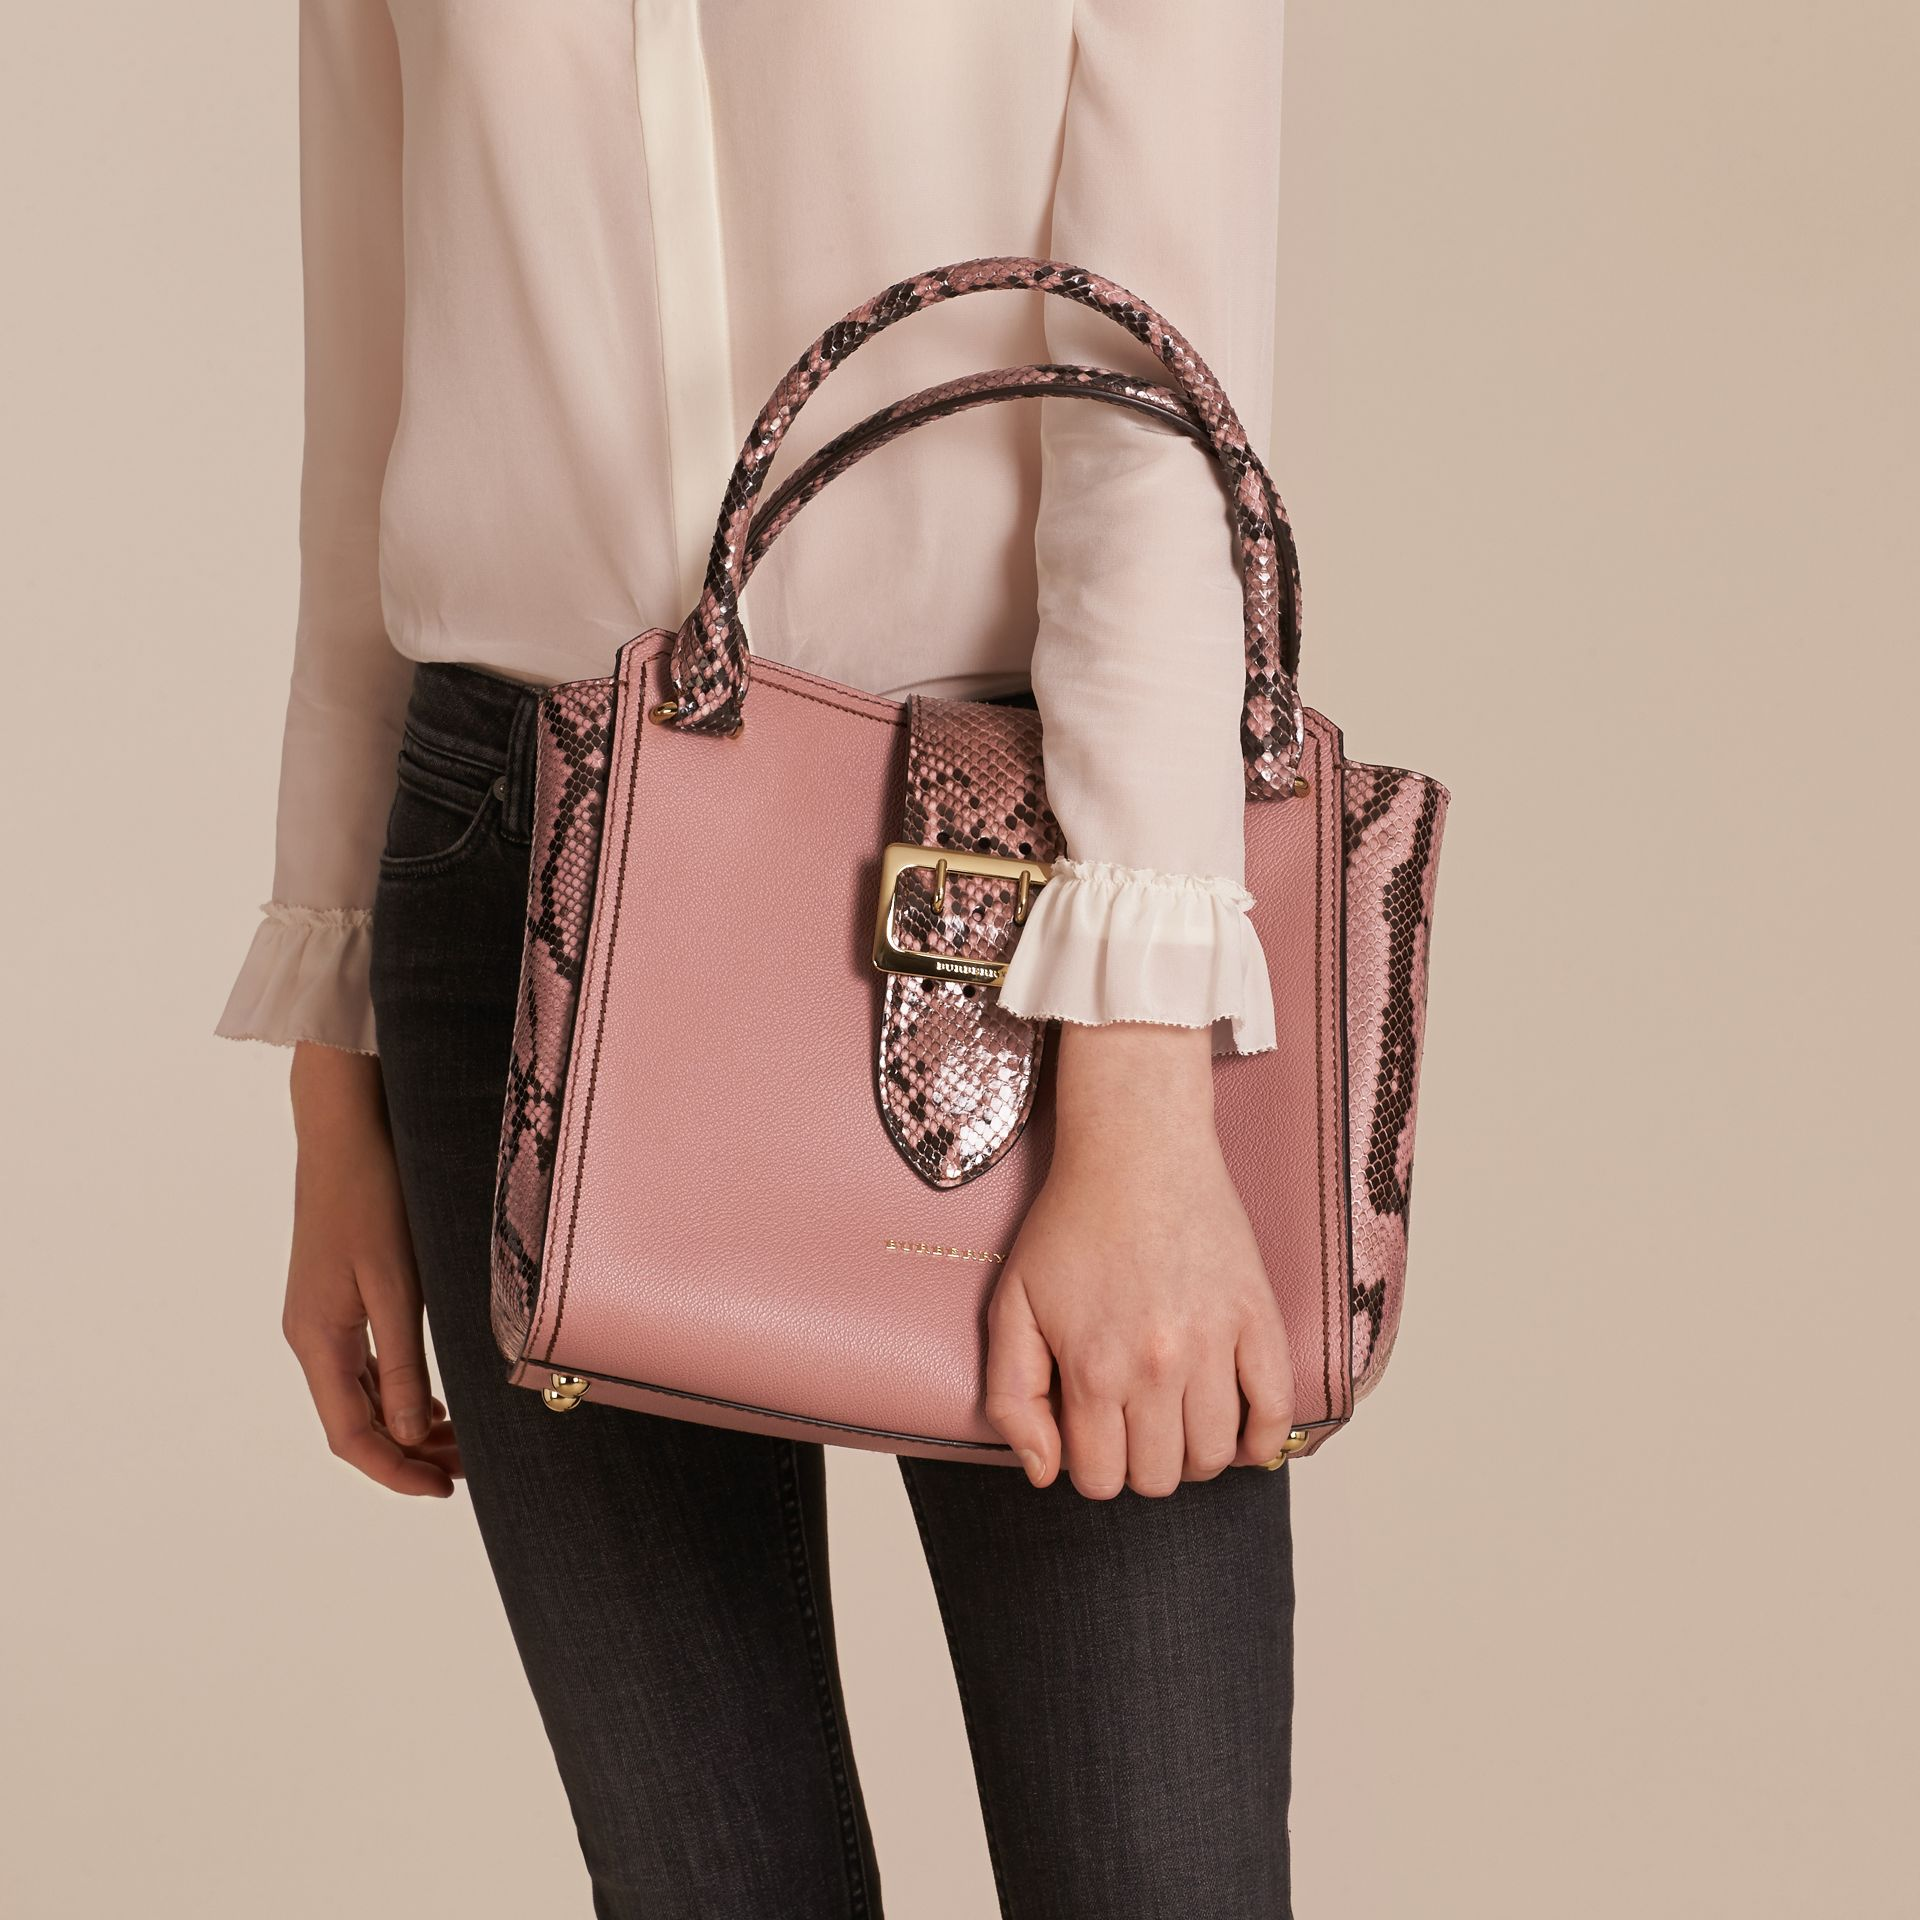 Sac tote The Buckle medium en cuir grainé et python (Rose Cendré) - Femme | Burberry - photo de la galerie 3